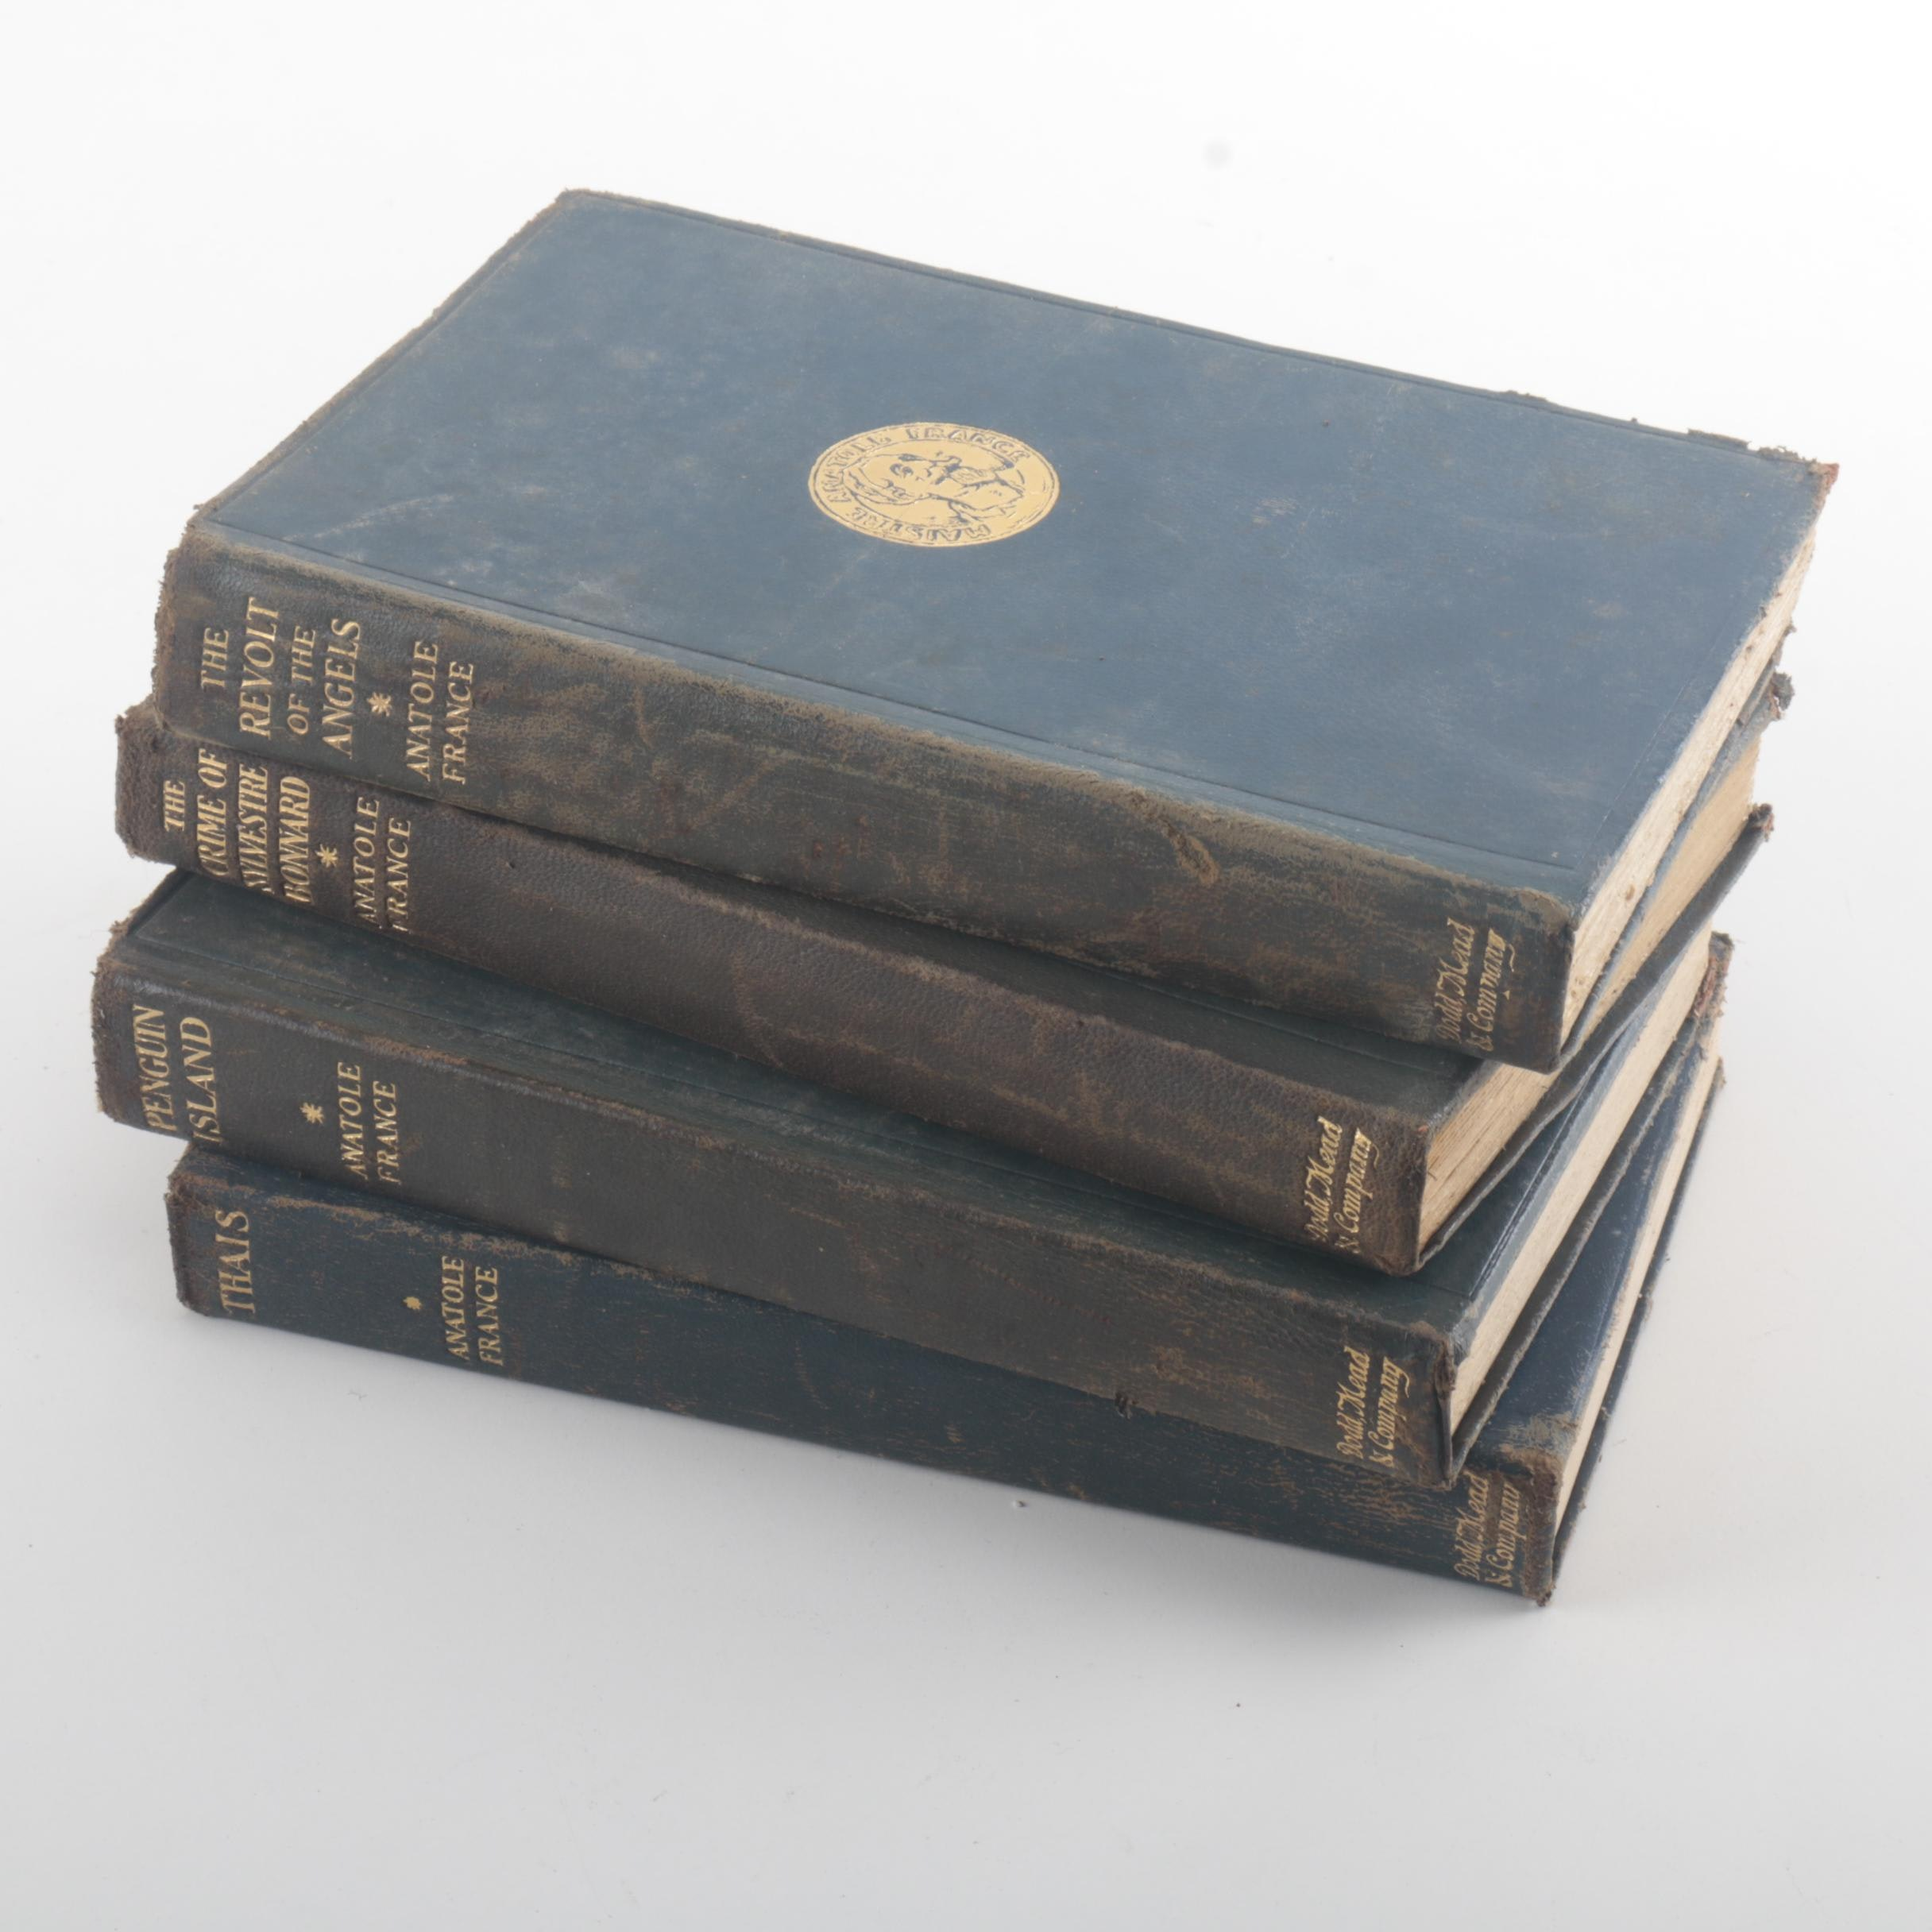 1922 Assorted Leather Bound Books by Anatole France